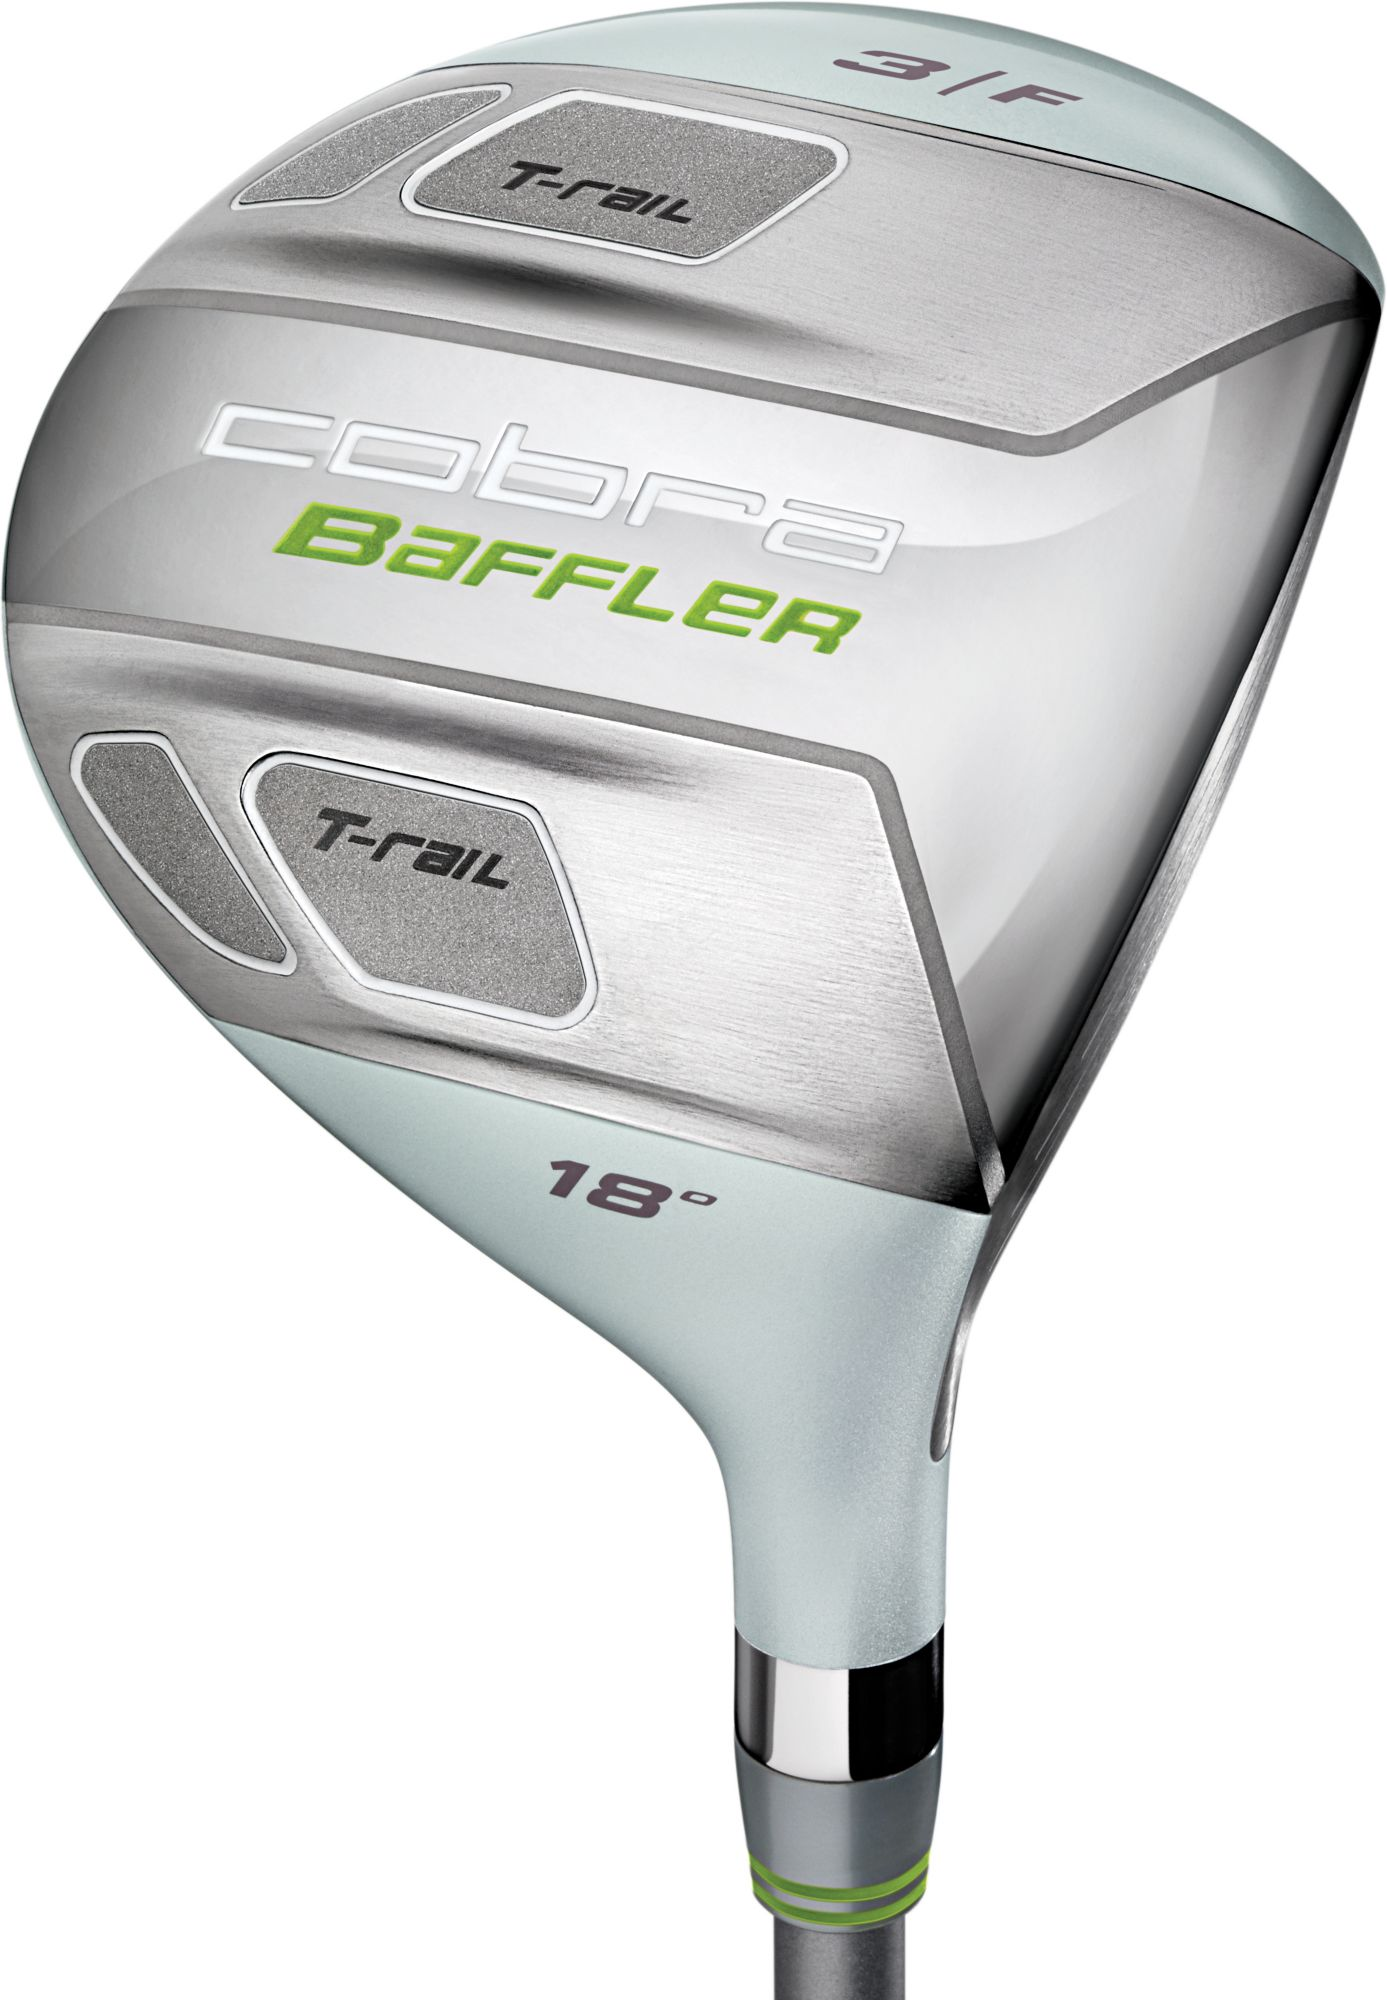 Cobra Women's Baffler T-Rail Fairway